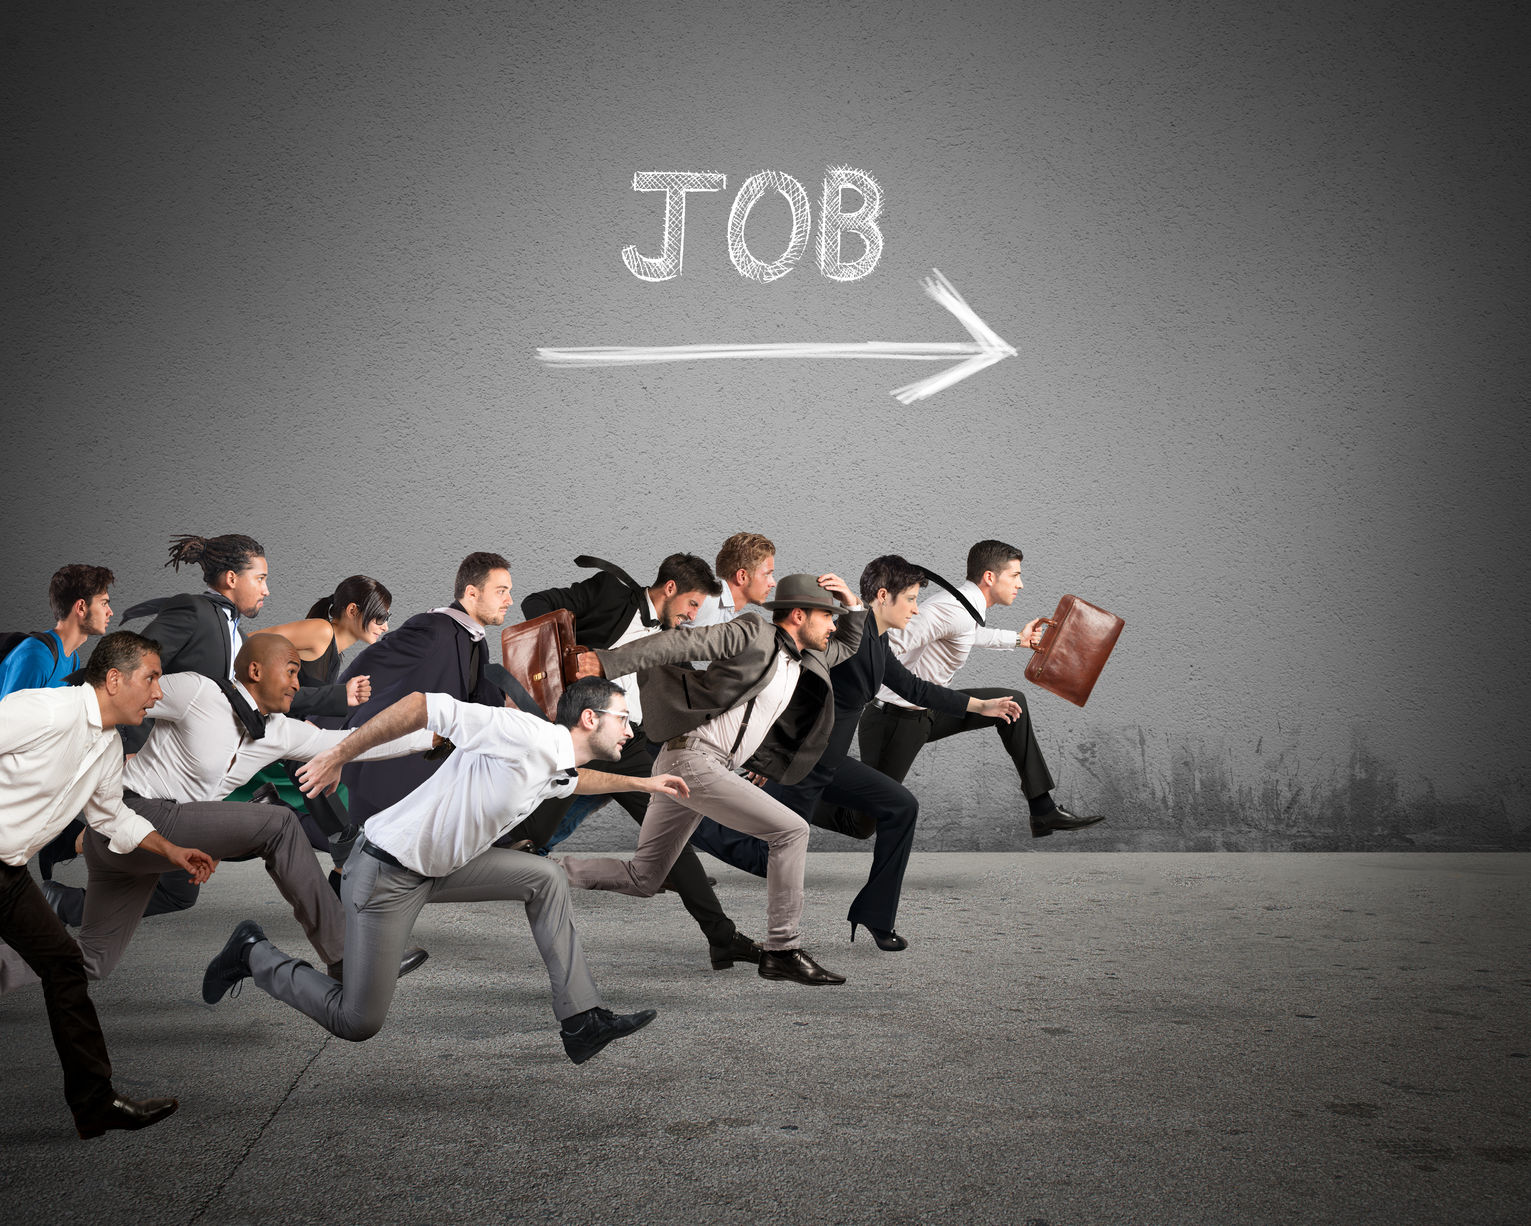 blog hire imaging 7 smart ways to speed up your job search